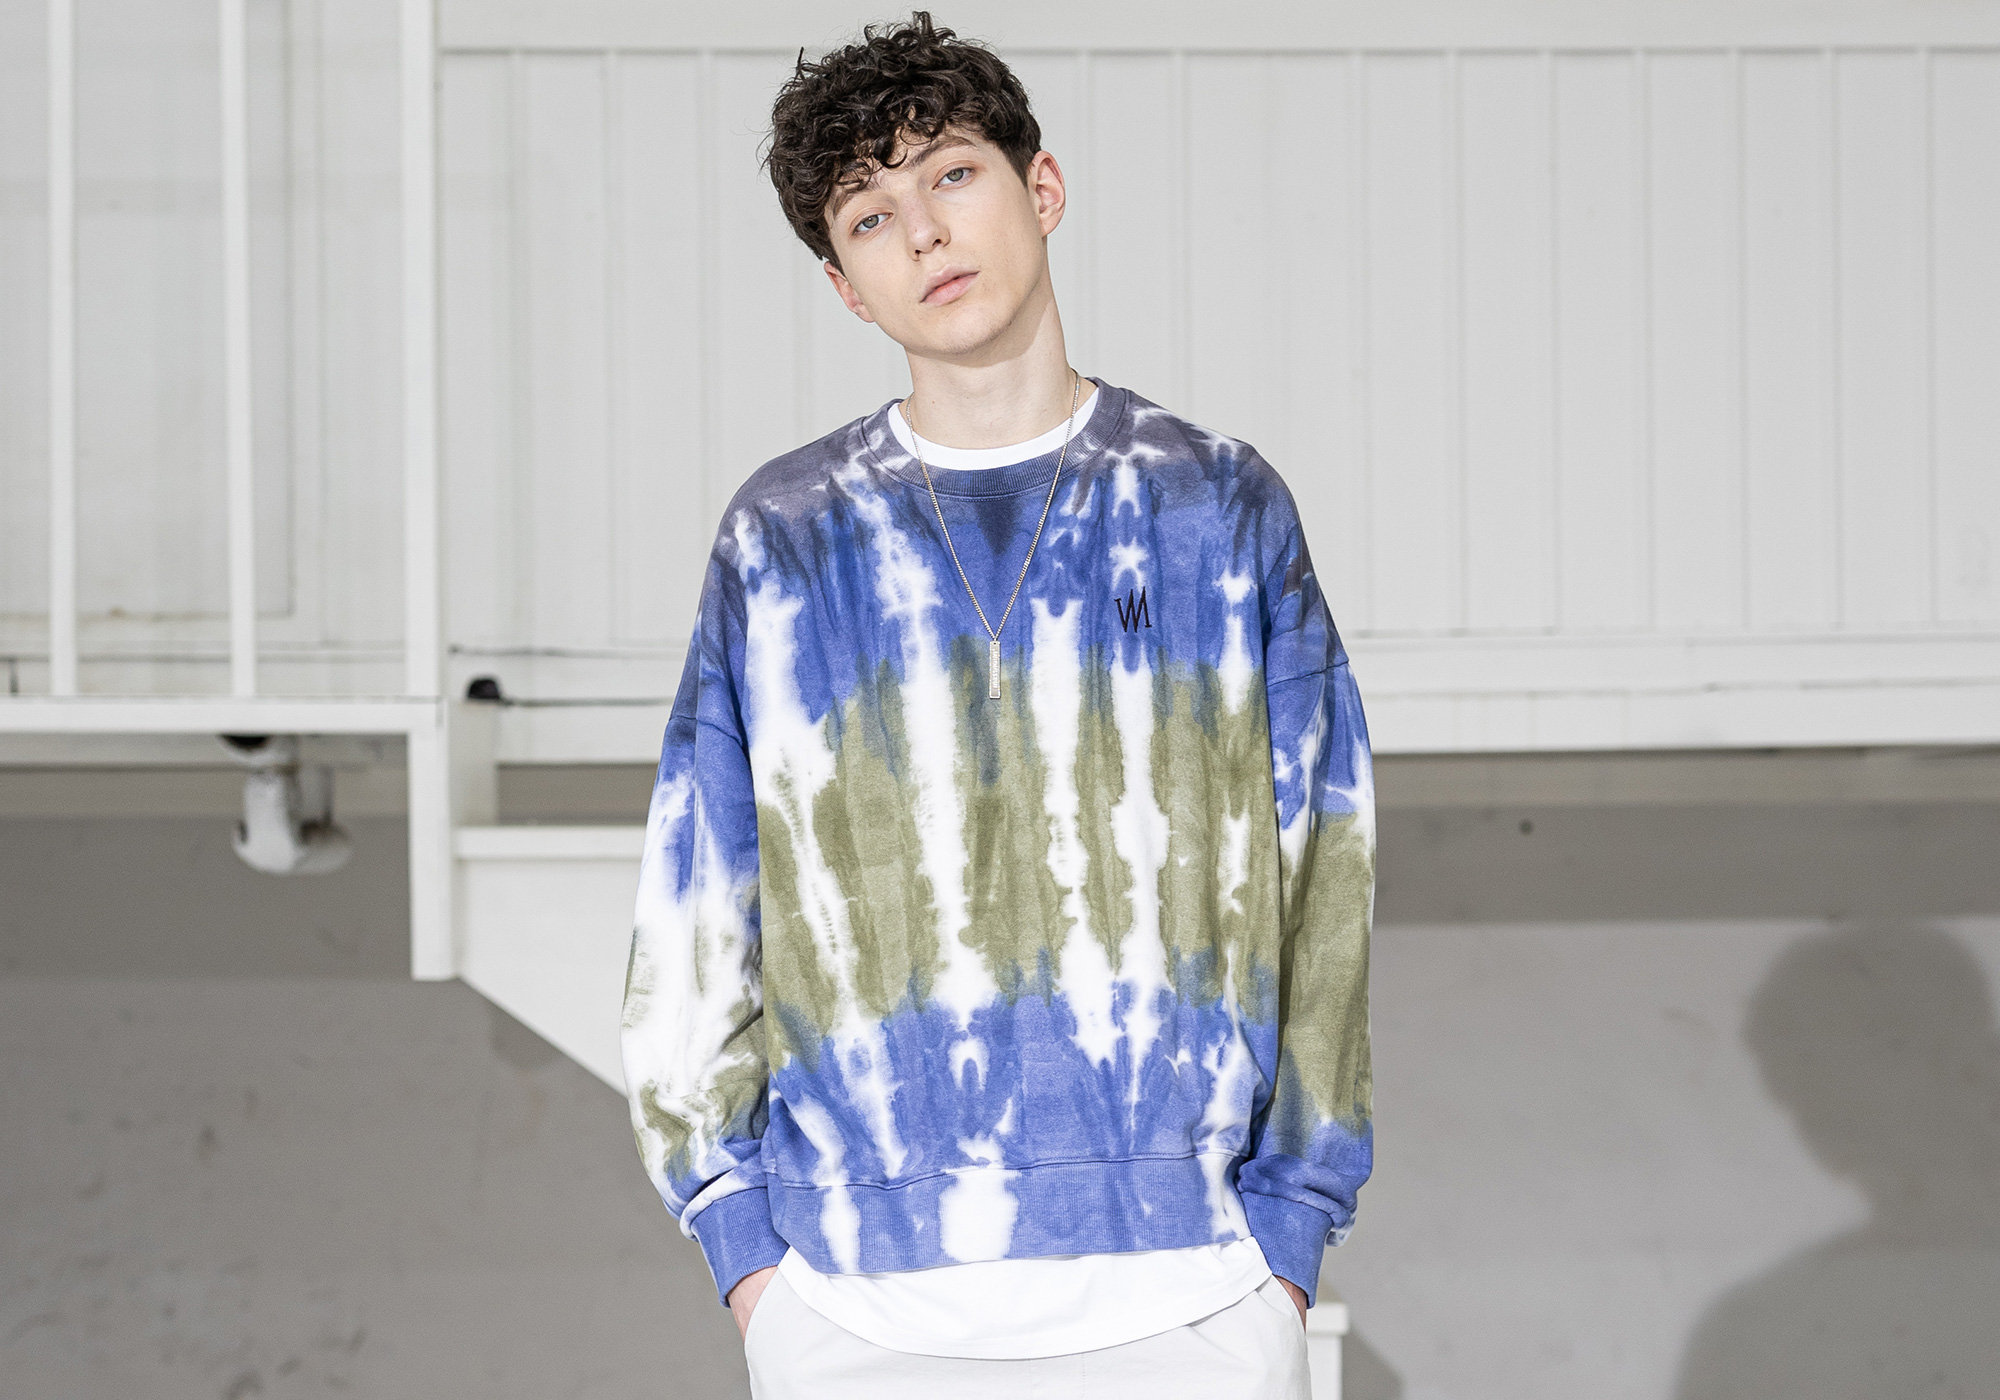 2020 Spring & Summer 1st LookBook